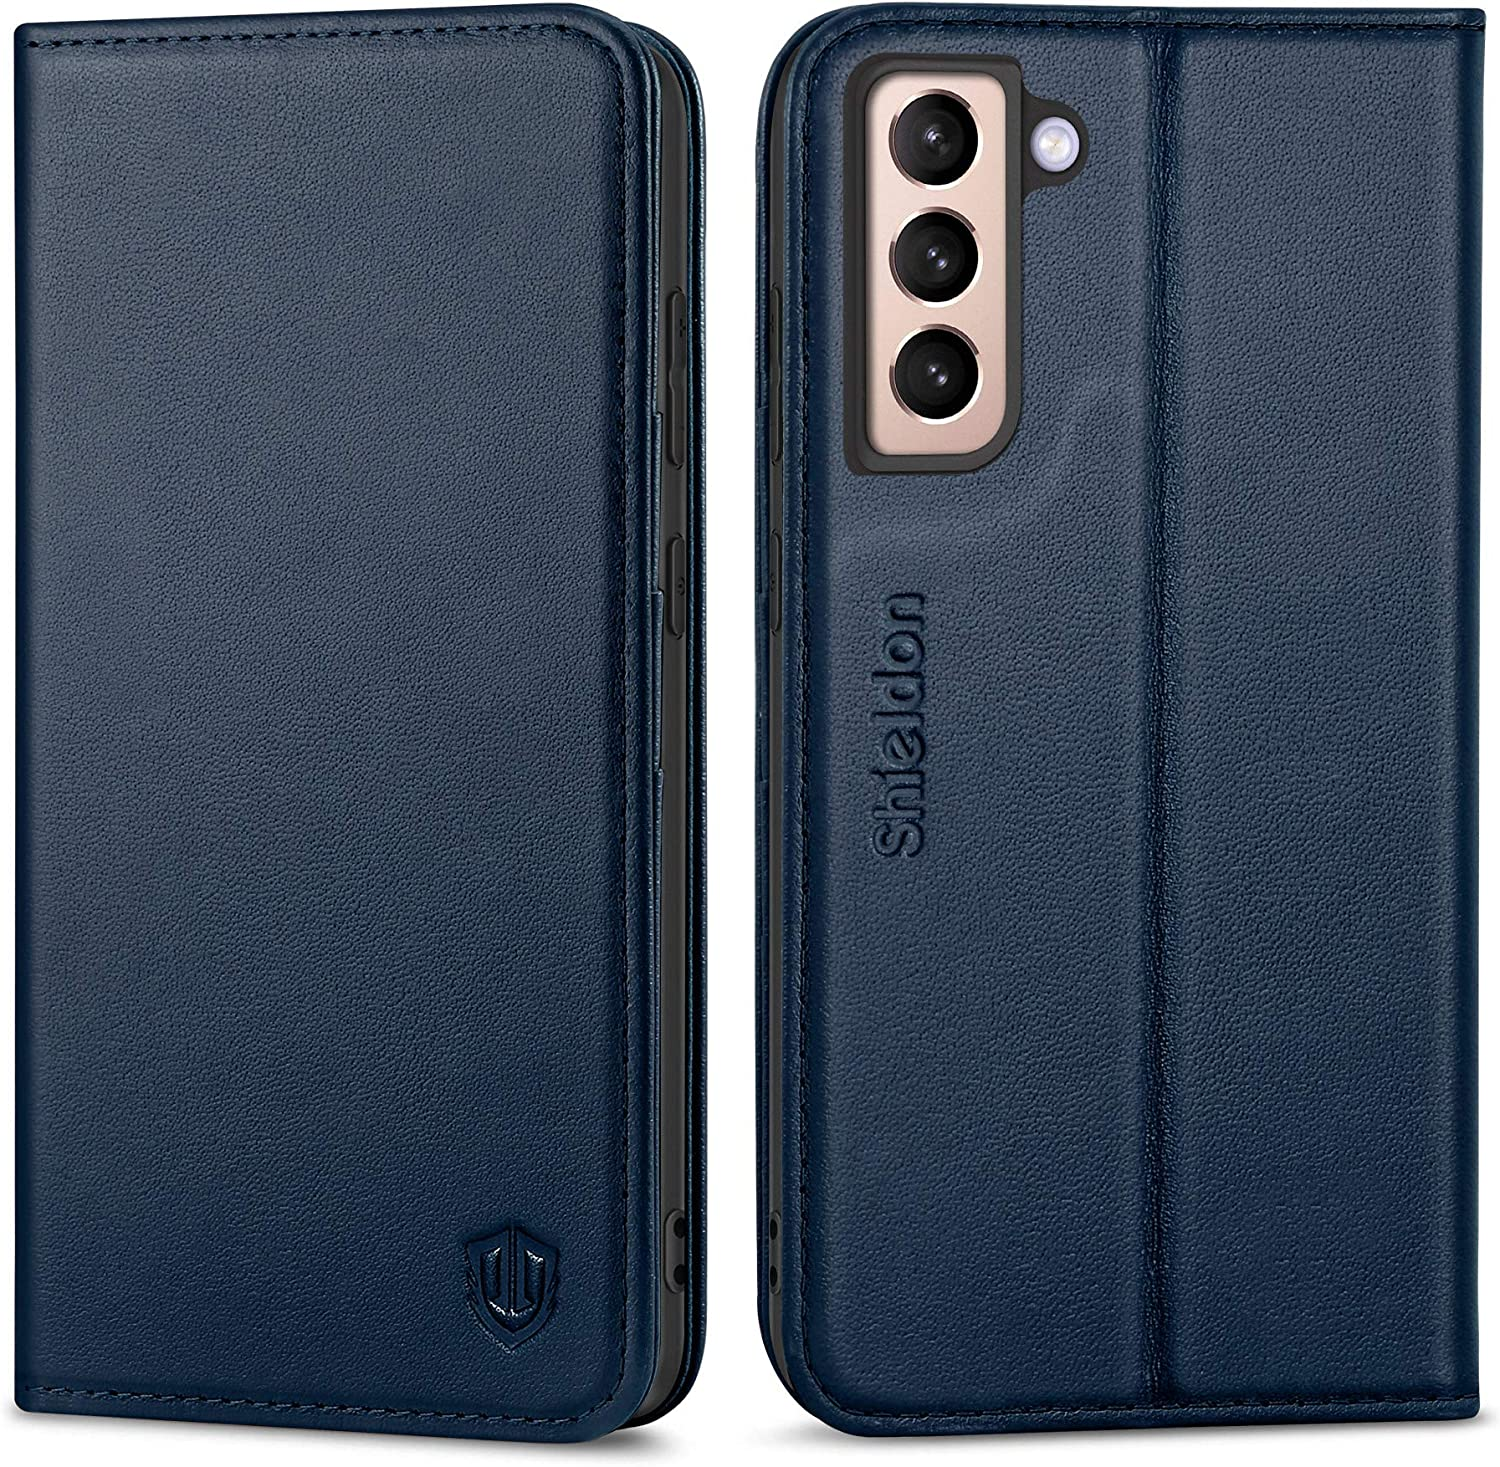 SHIELDON Galaxy S21 5G Case, Galaxy S21 Wallet Case, Genuine Leather Flip Magnetic Book Design Credit Card Slots Shock-Absorbing Protective Case Compatible with Galaxy S21 5G (6.2 inch) - Navy Blue